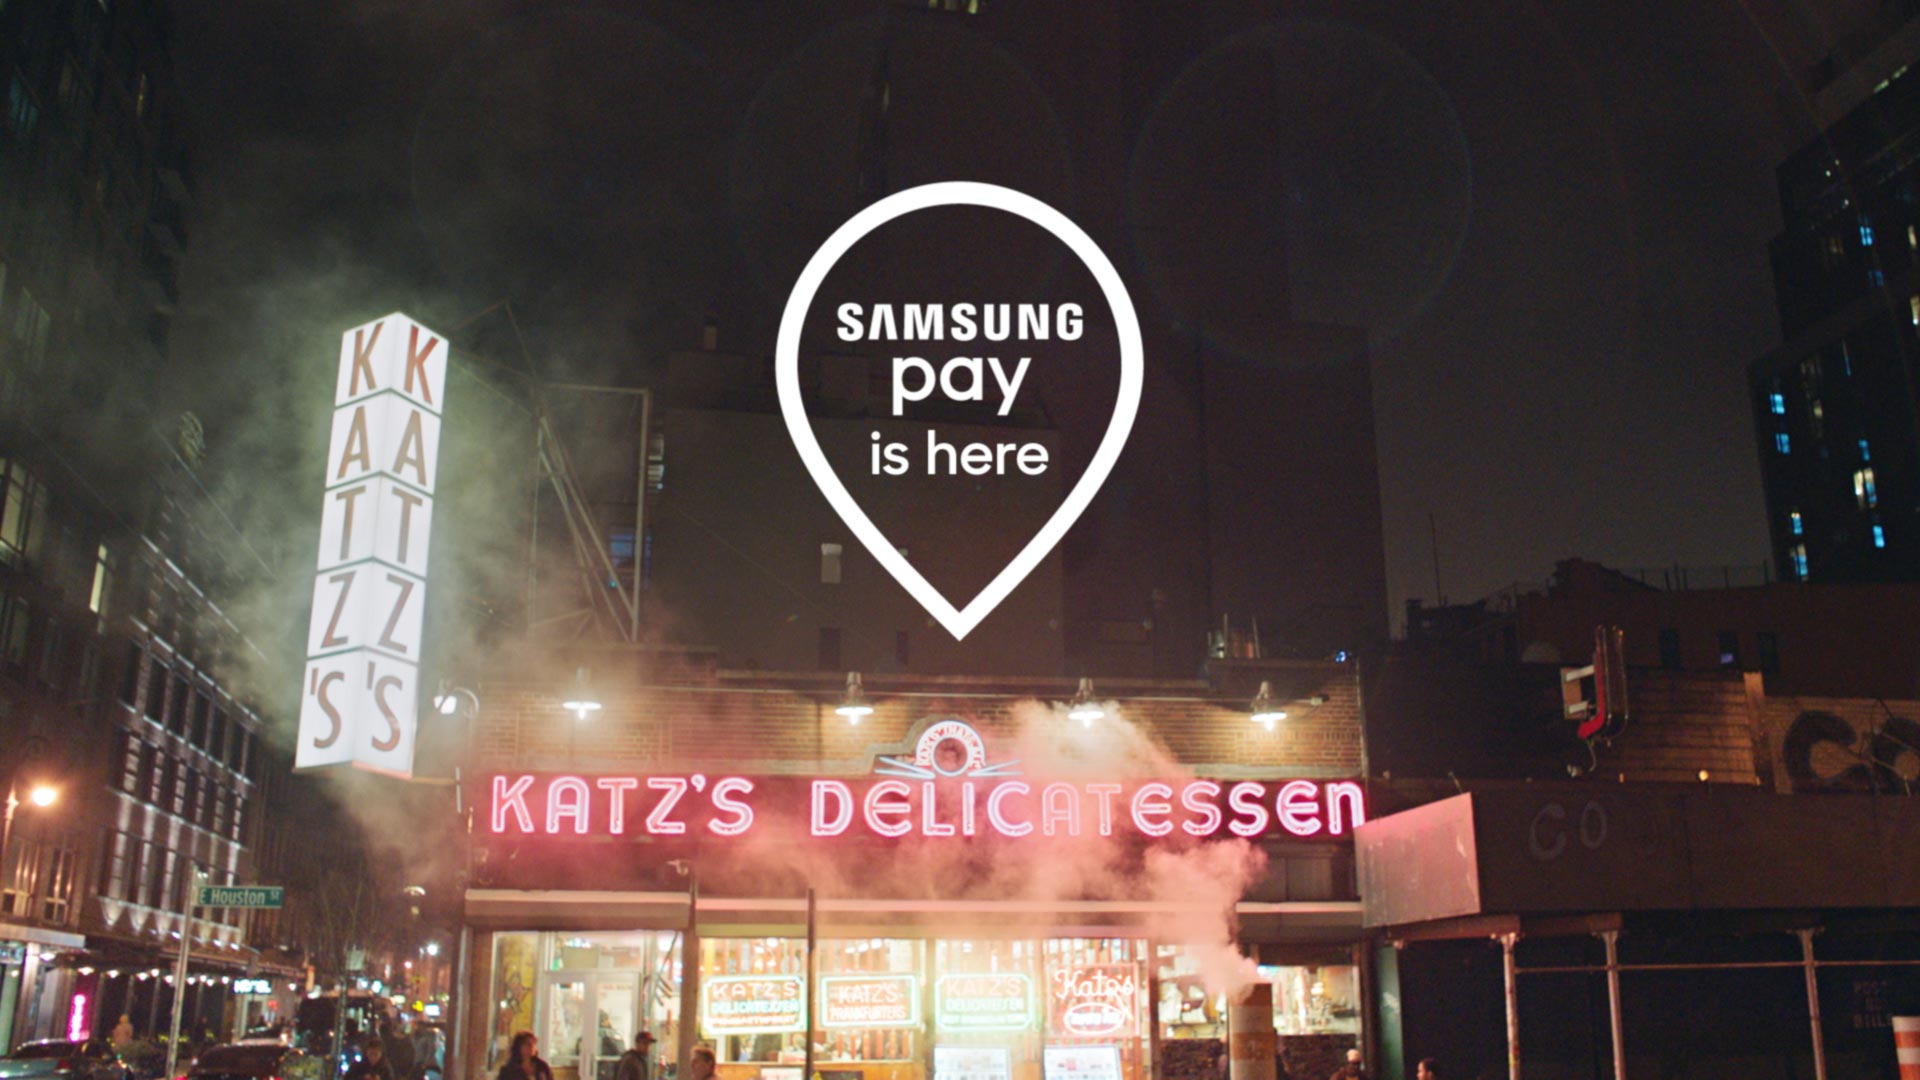 Samsung Pay is Here